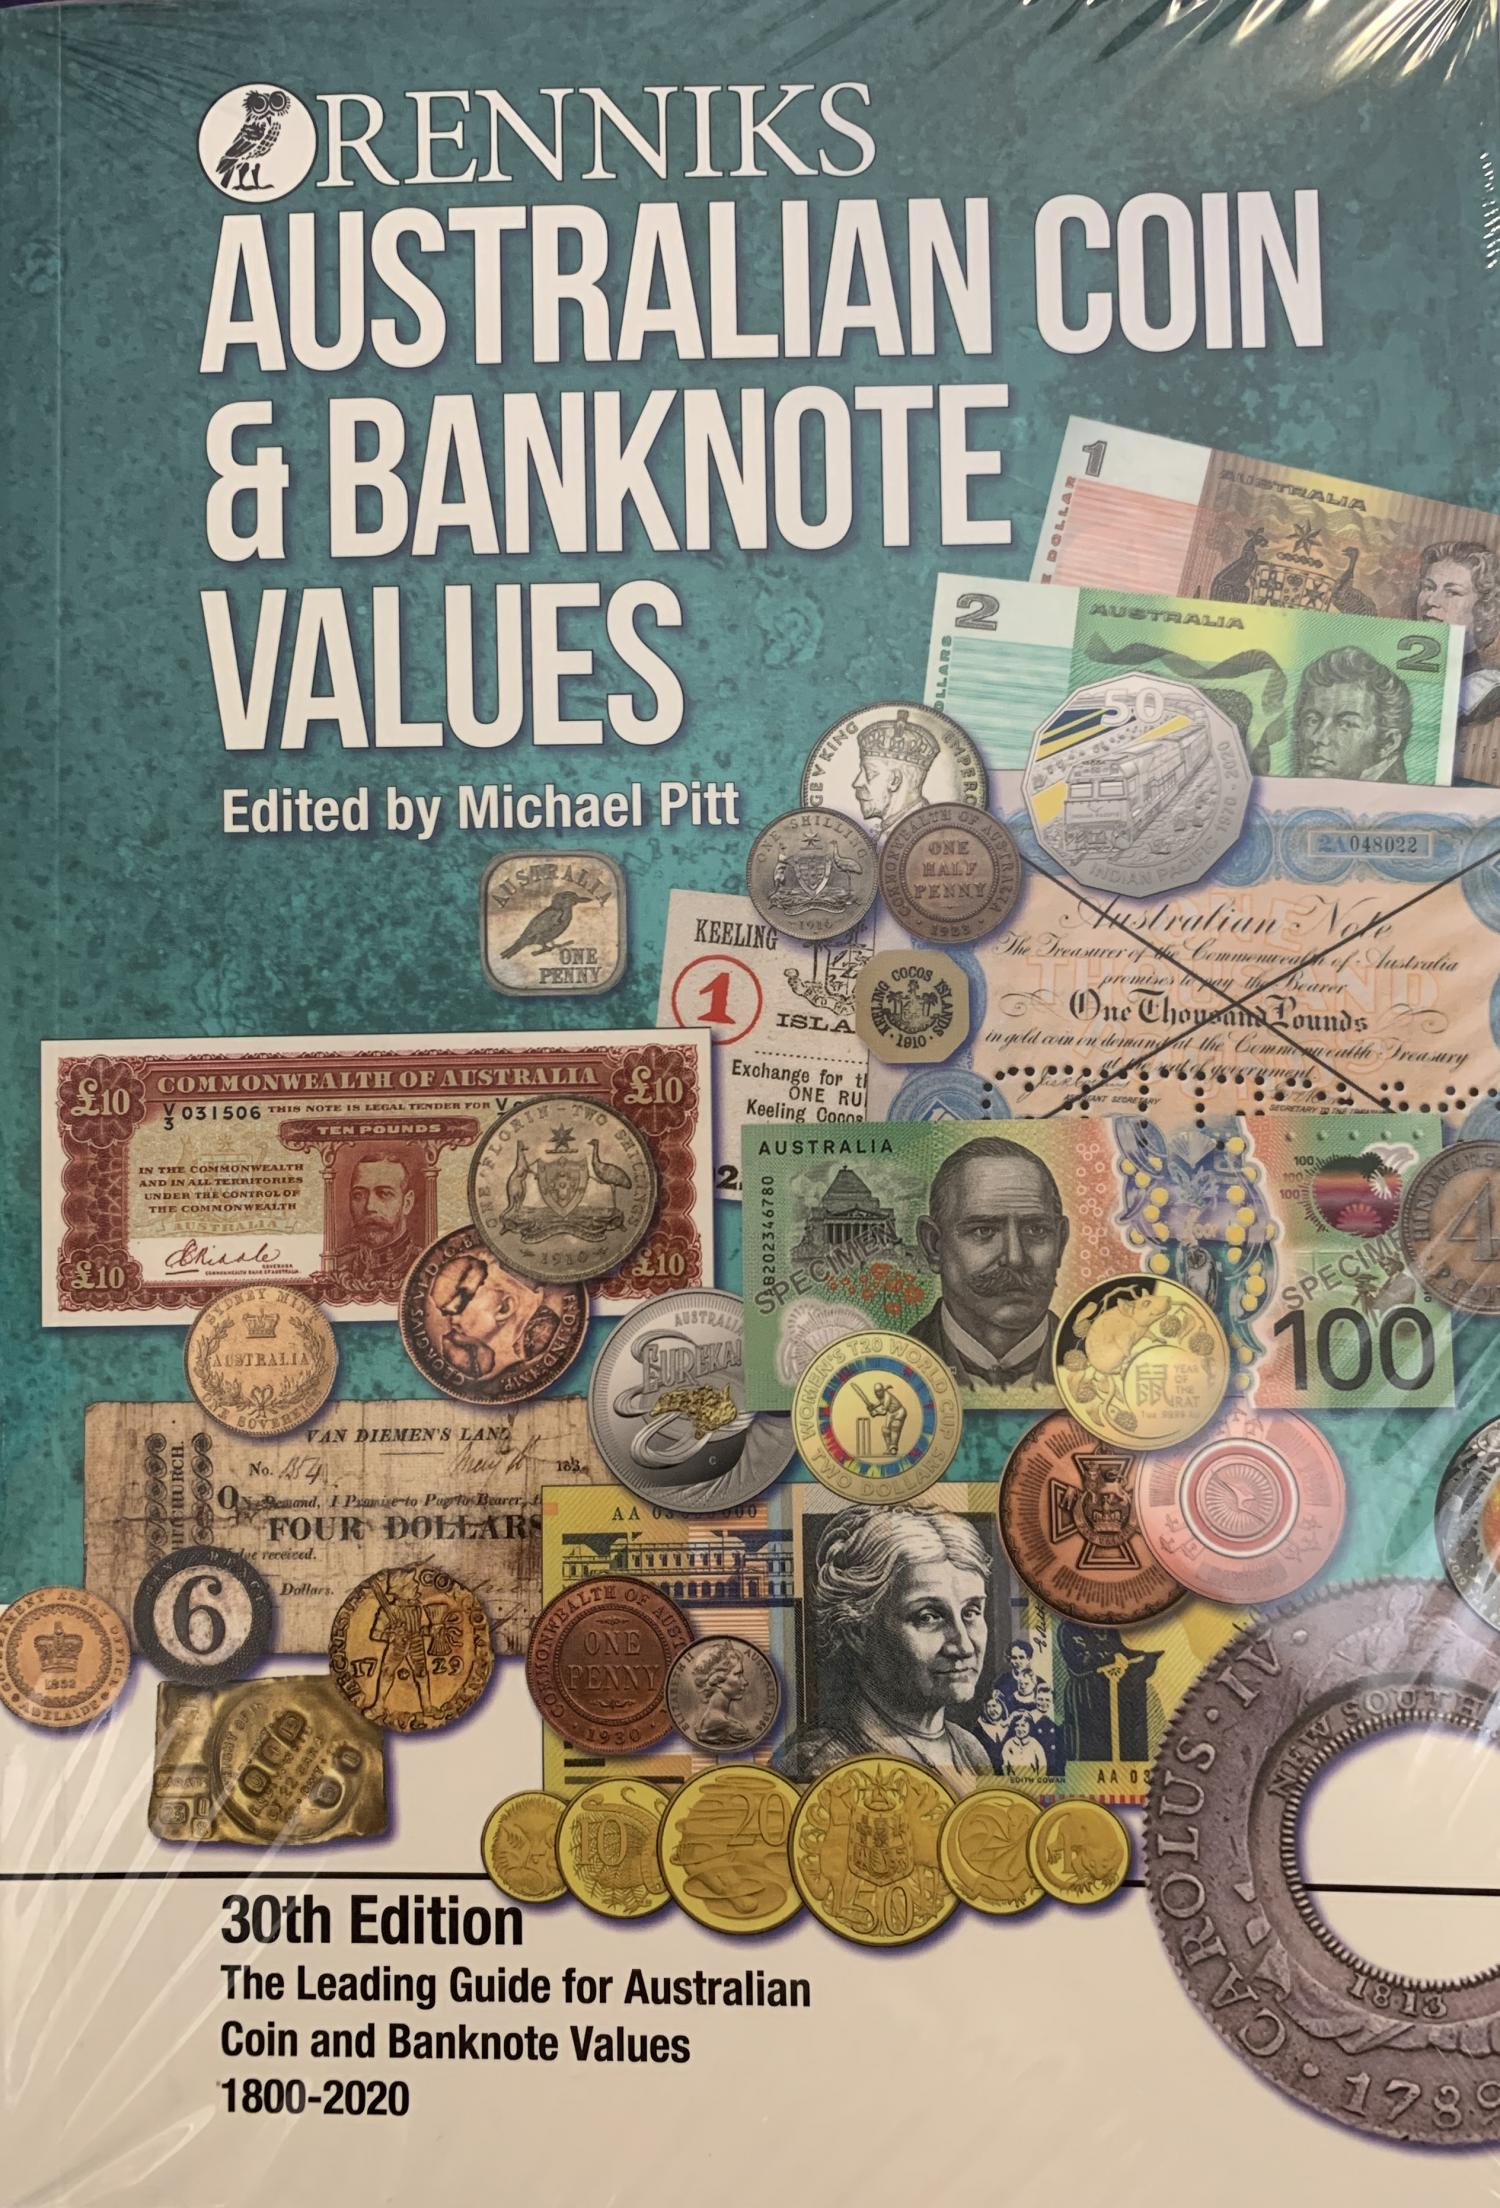 Thumbnail for 2020 Renniks Australian Coin & Banknote Values 30th Edition 1800-2020 Softcover Book